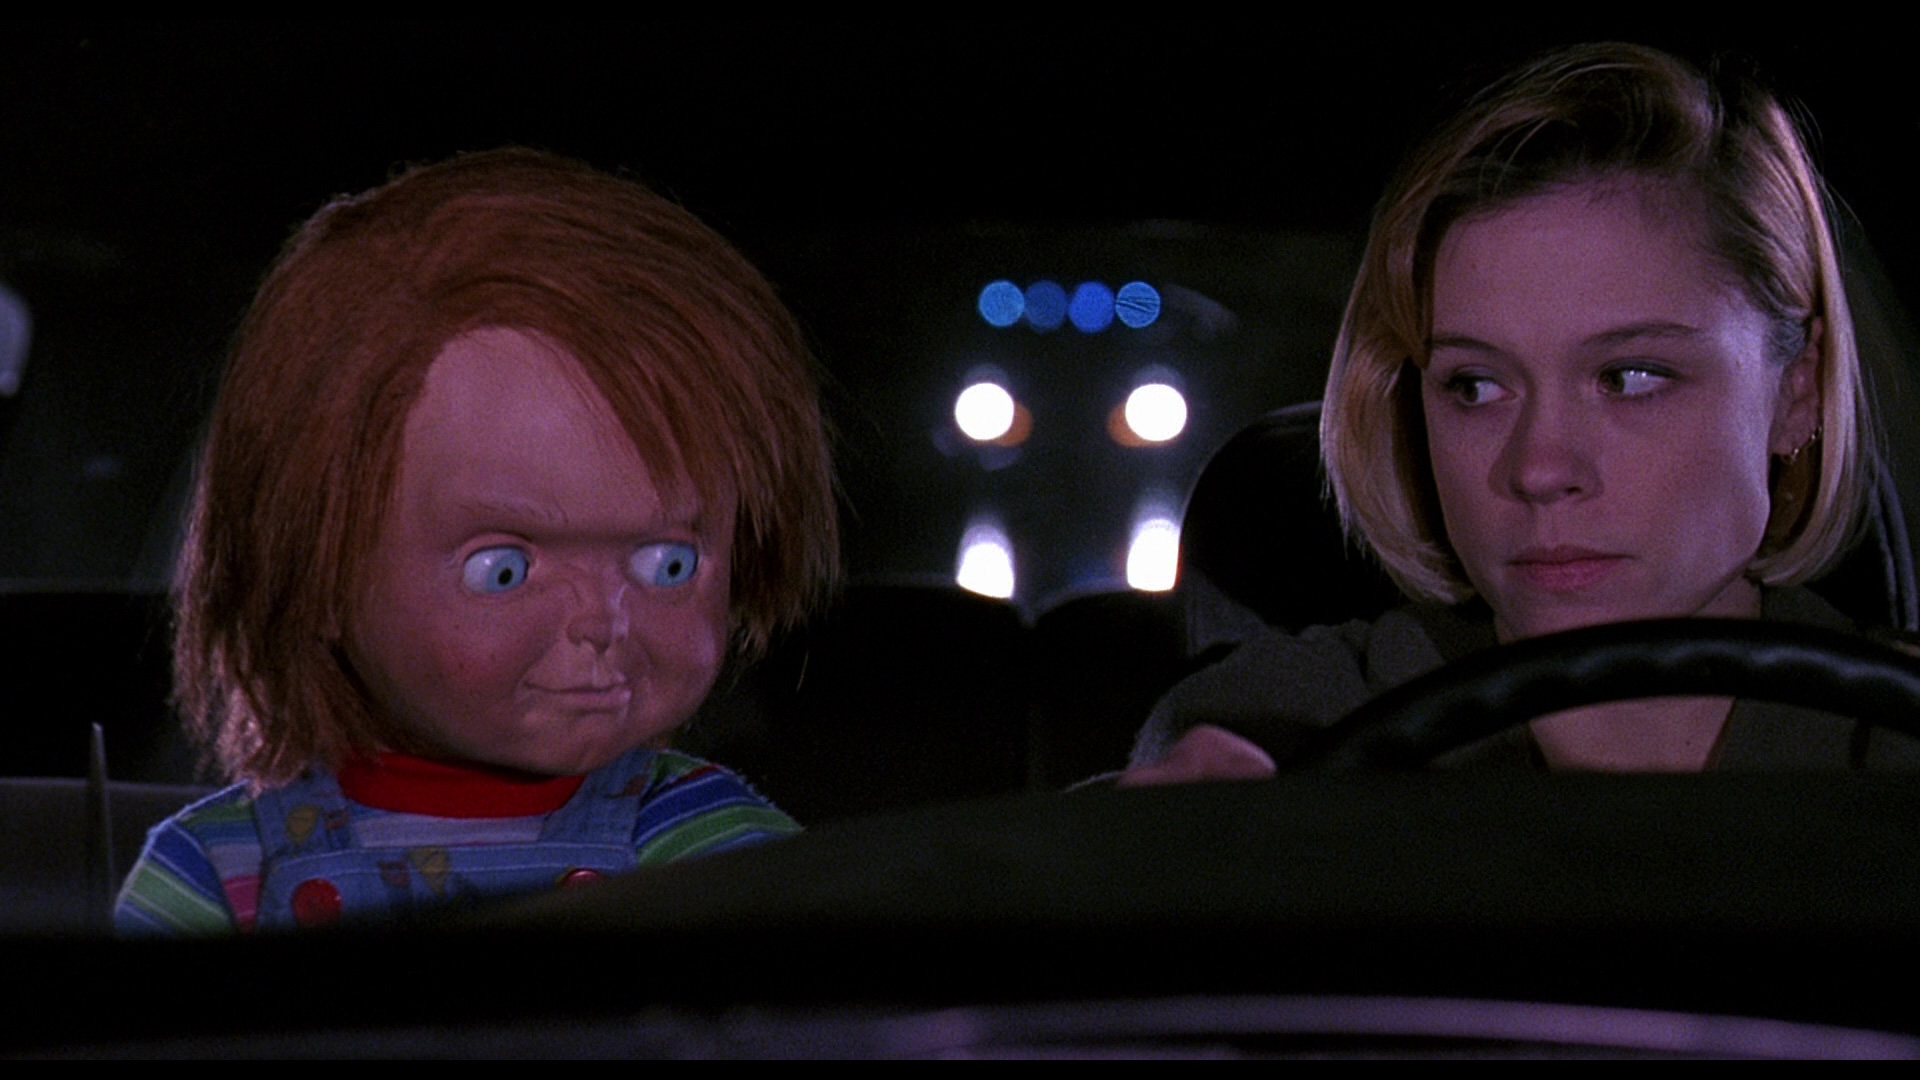 California Driver Busted Using Chucky Doll as Carpool Passenger - Bloody Disgusting